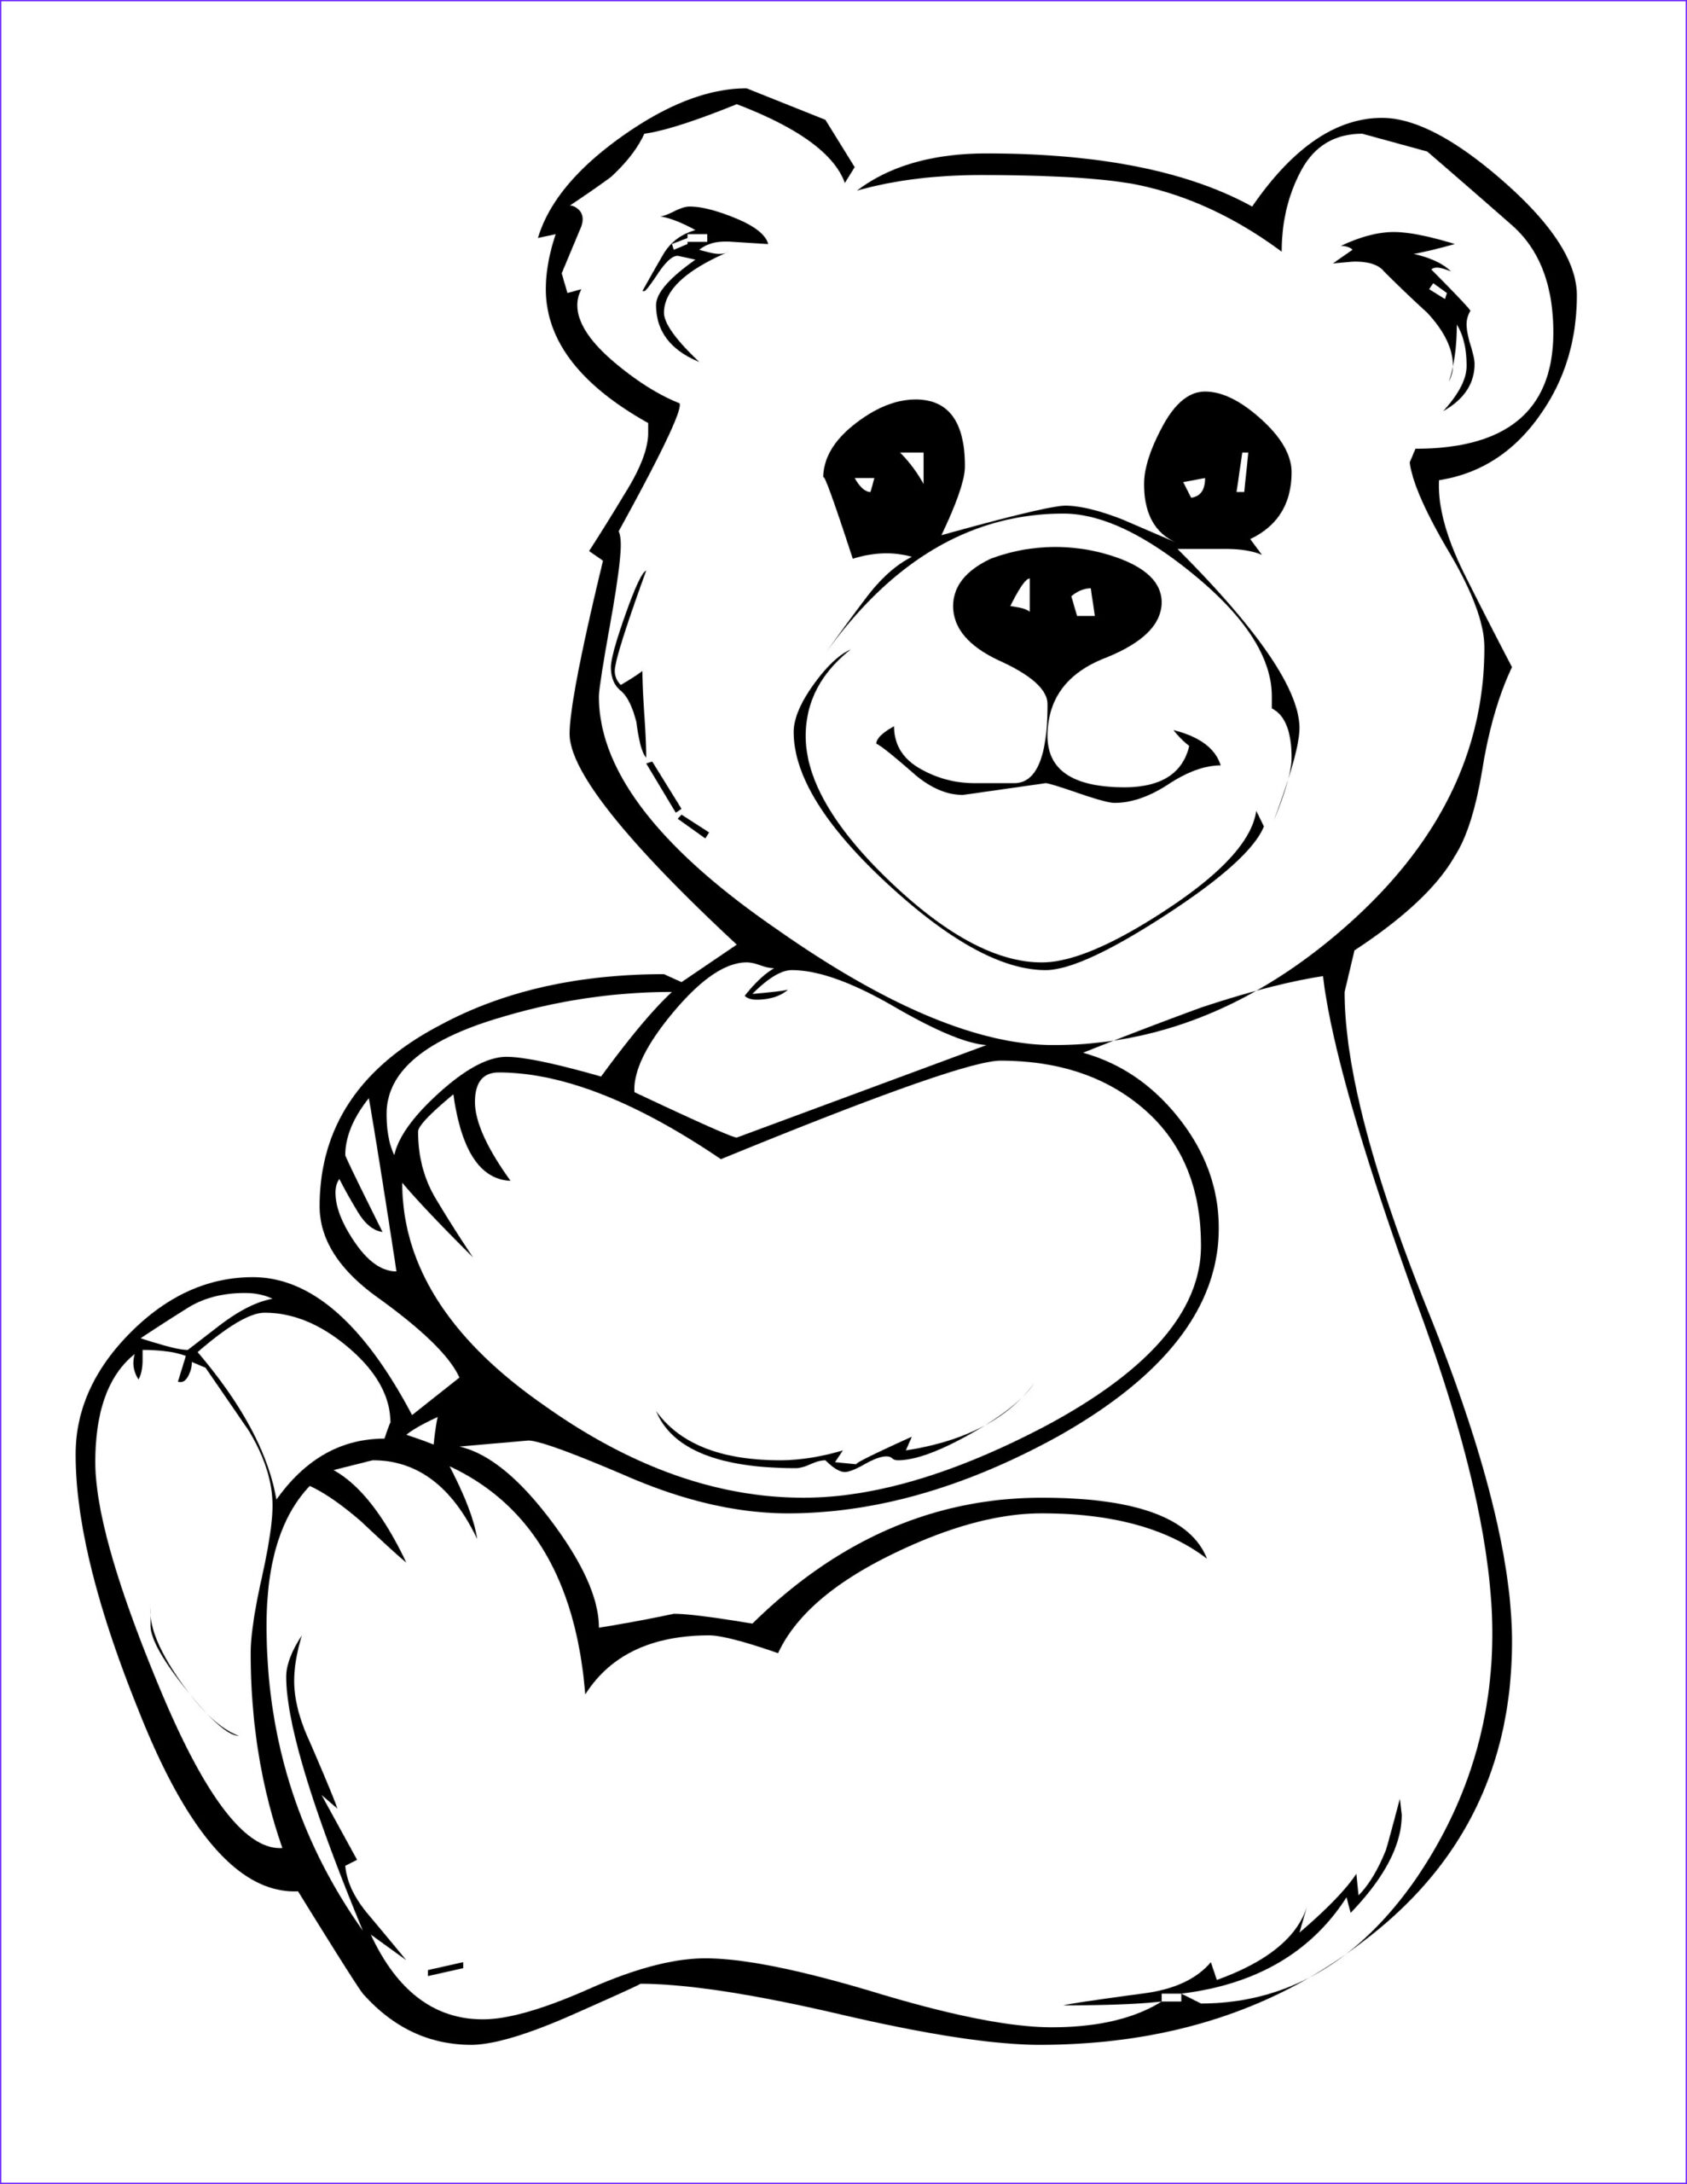 Bear Coloring Sheet Elegant Images Free Printable Teddy Bear Coloring Pages for Kids